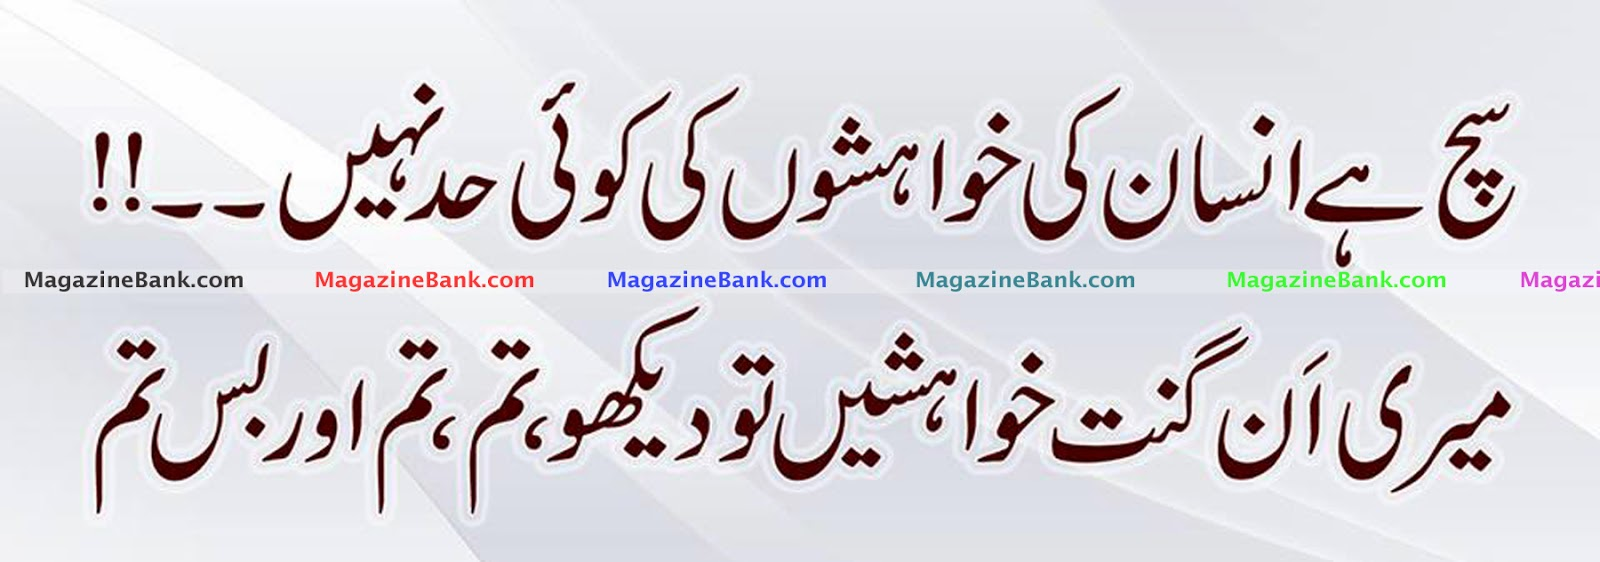 Sad Quotes About Love That Make You Cry In Urdu : Sad Quotes In Urdu. QuotesGram